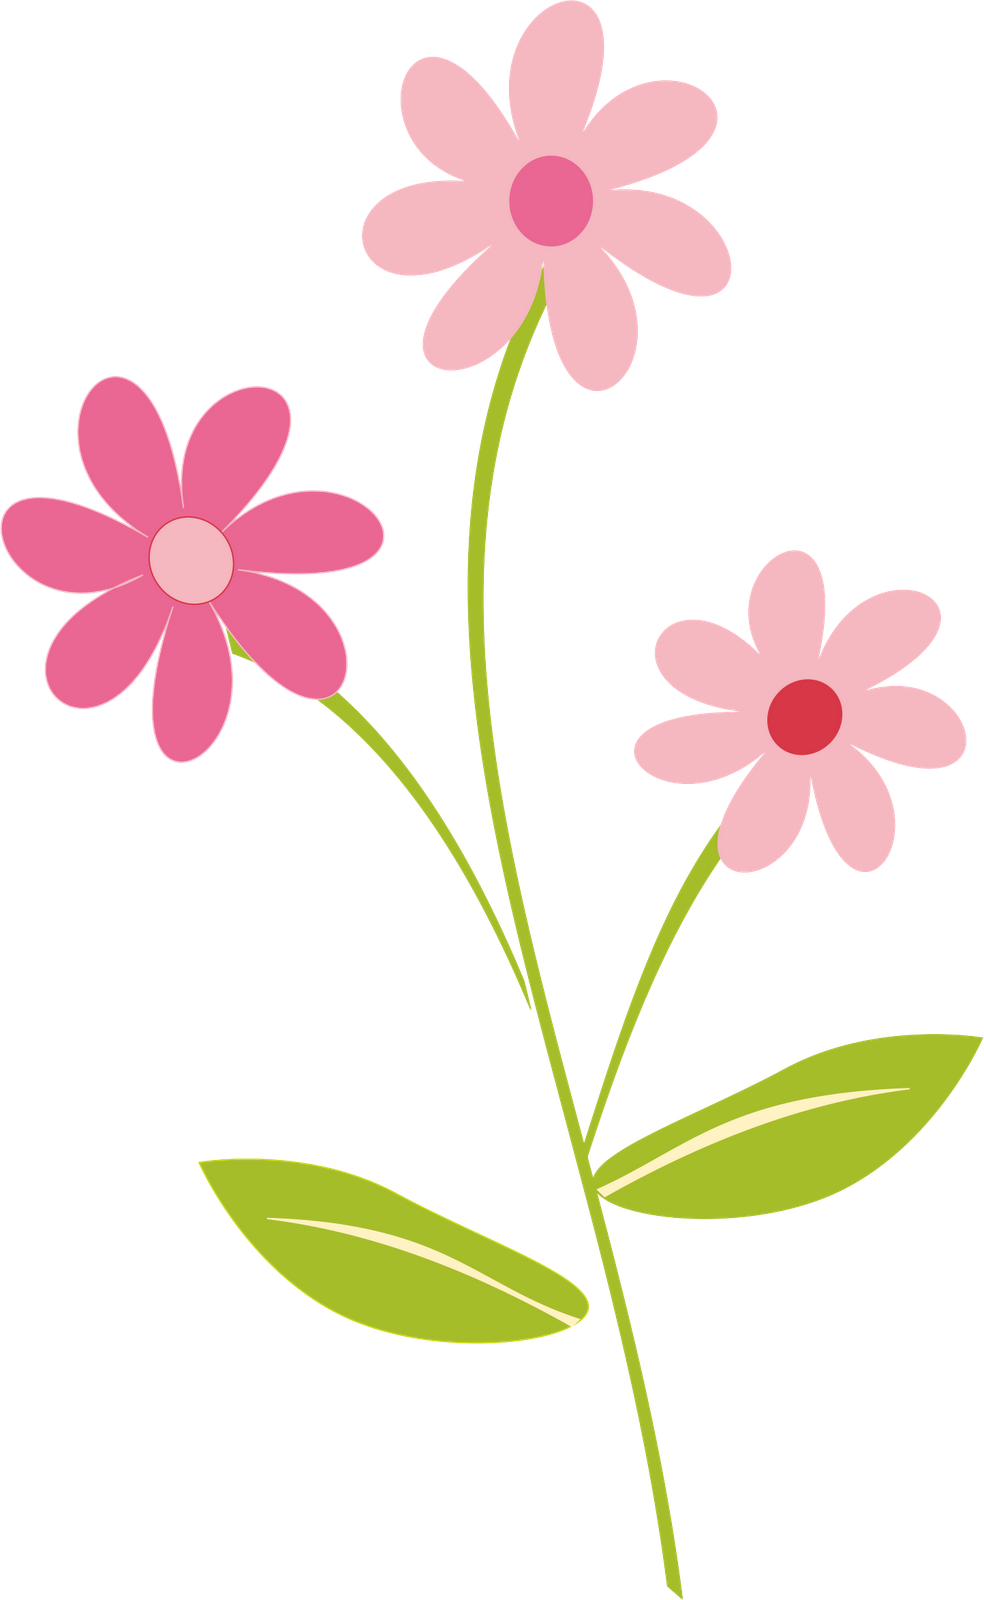 Free for at getdrawings. Kids clipart flower